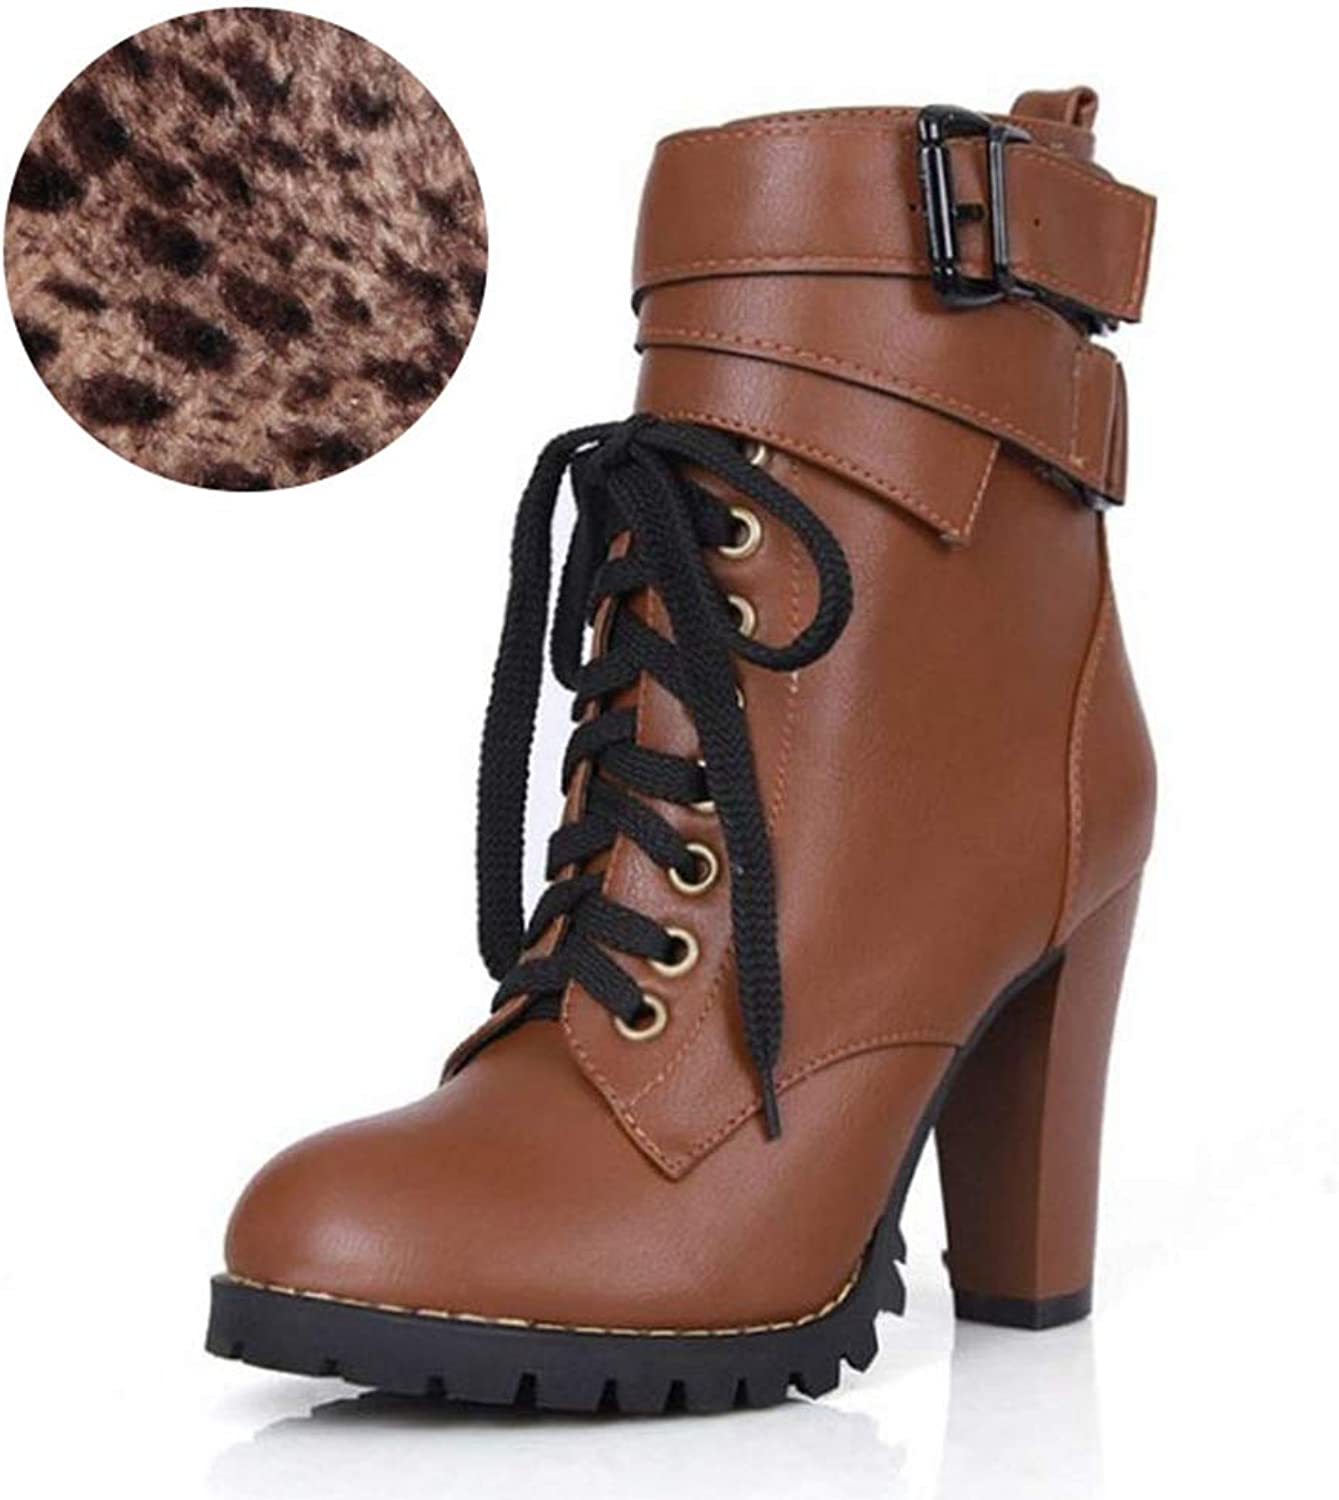 T-JULY Women's Winter Fur Warm Ankle Boots Cross Strap shoes Women Lace up Short Boots Fashion Boots Girls Footwear